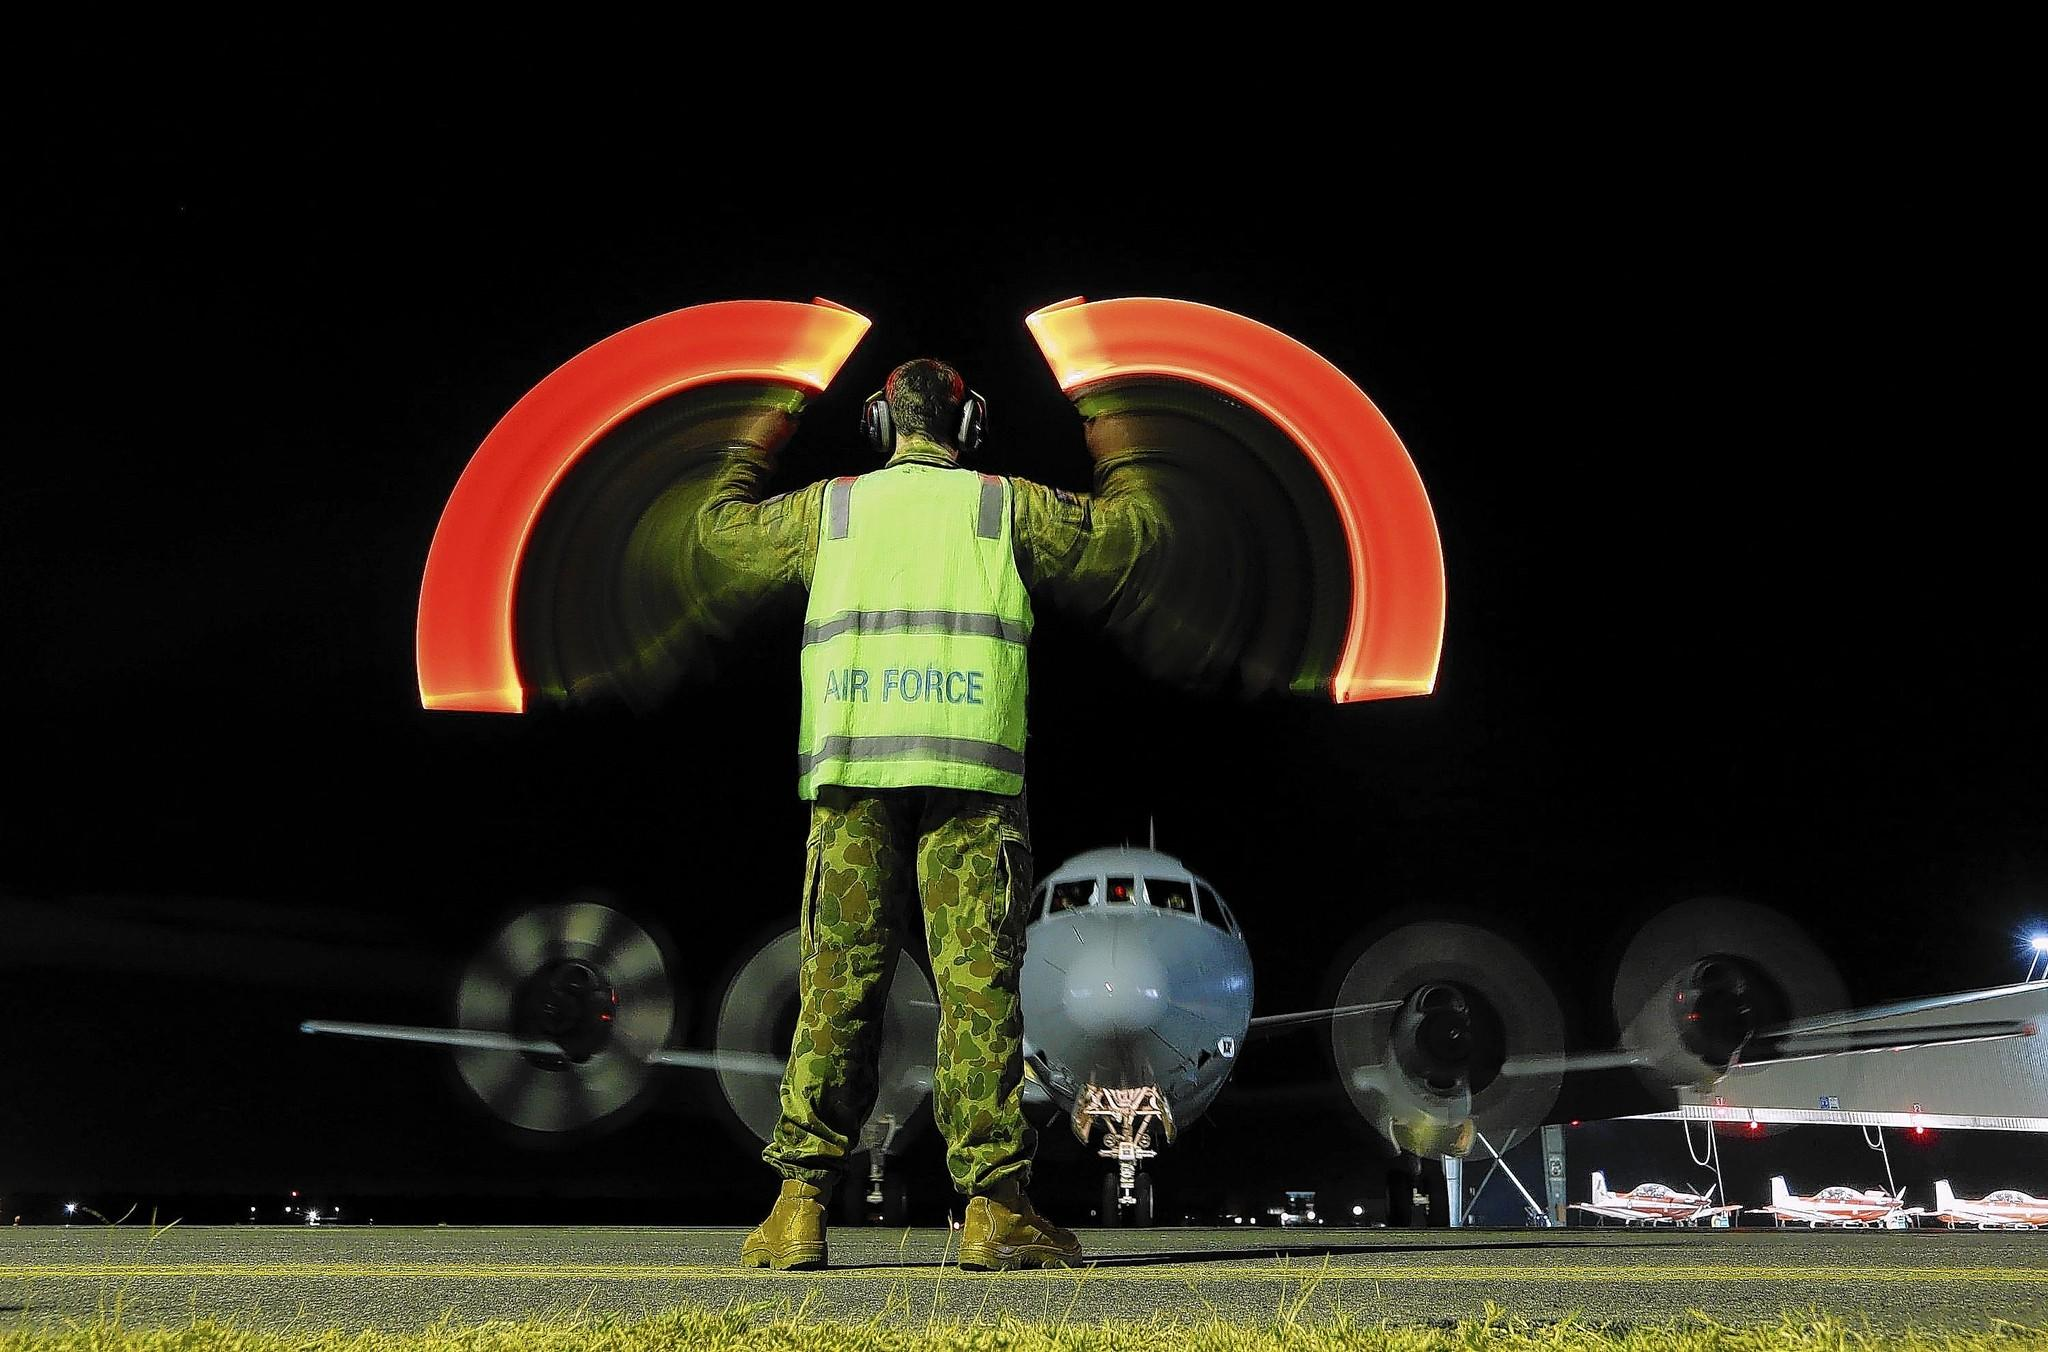 A ground crew member directs an Australian air force plane upon its return to the Pearce air base near Perth after it took part in a search for the Malaysia Airlines jetliner.